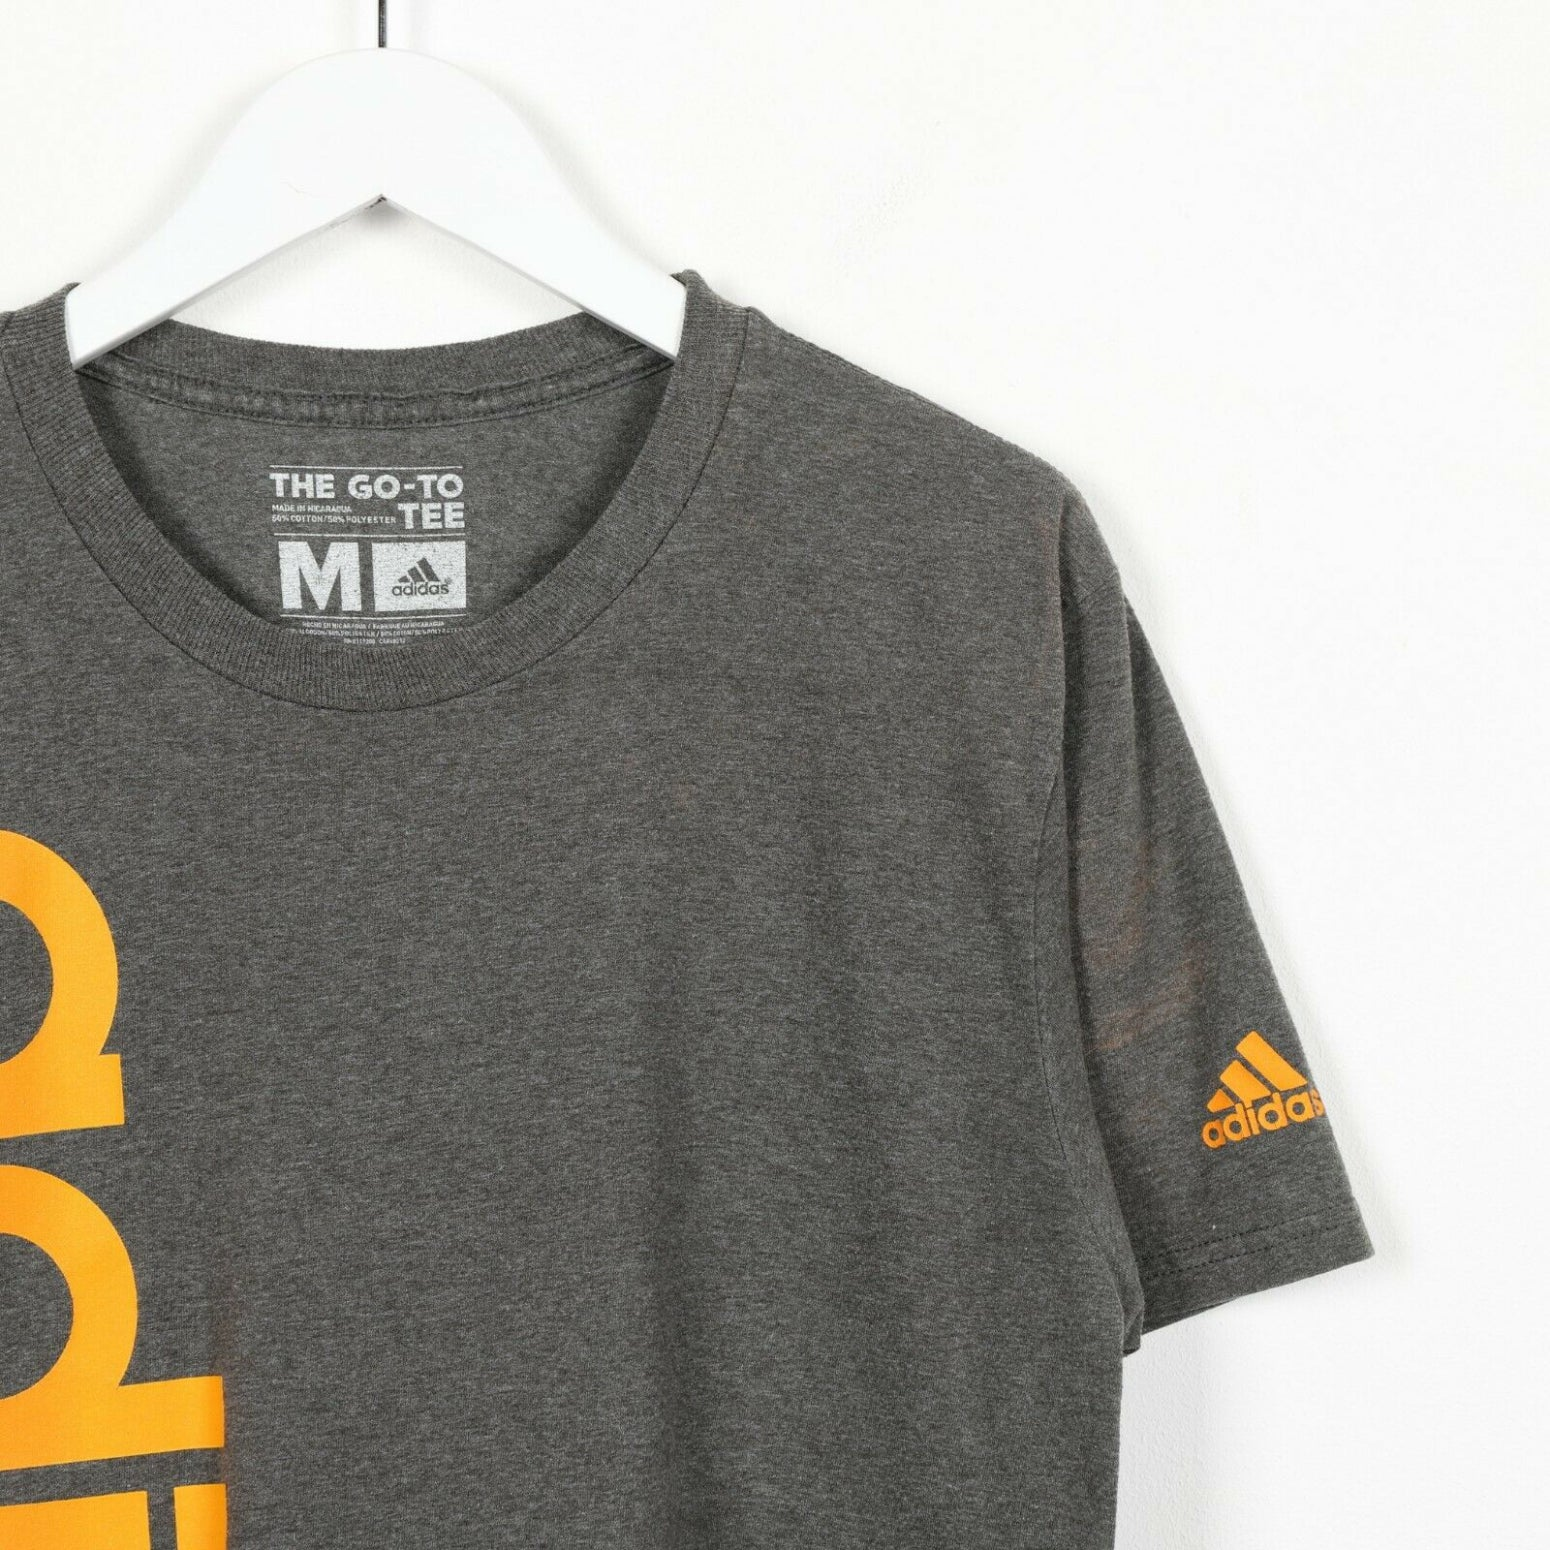 Vintage ADIDAS Big Graphic Logo T Shirt Tee Grey Orange Medium M